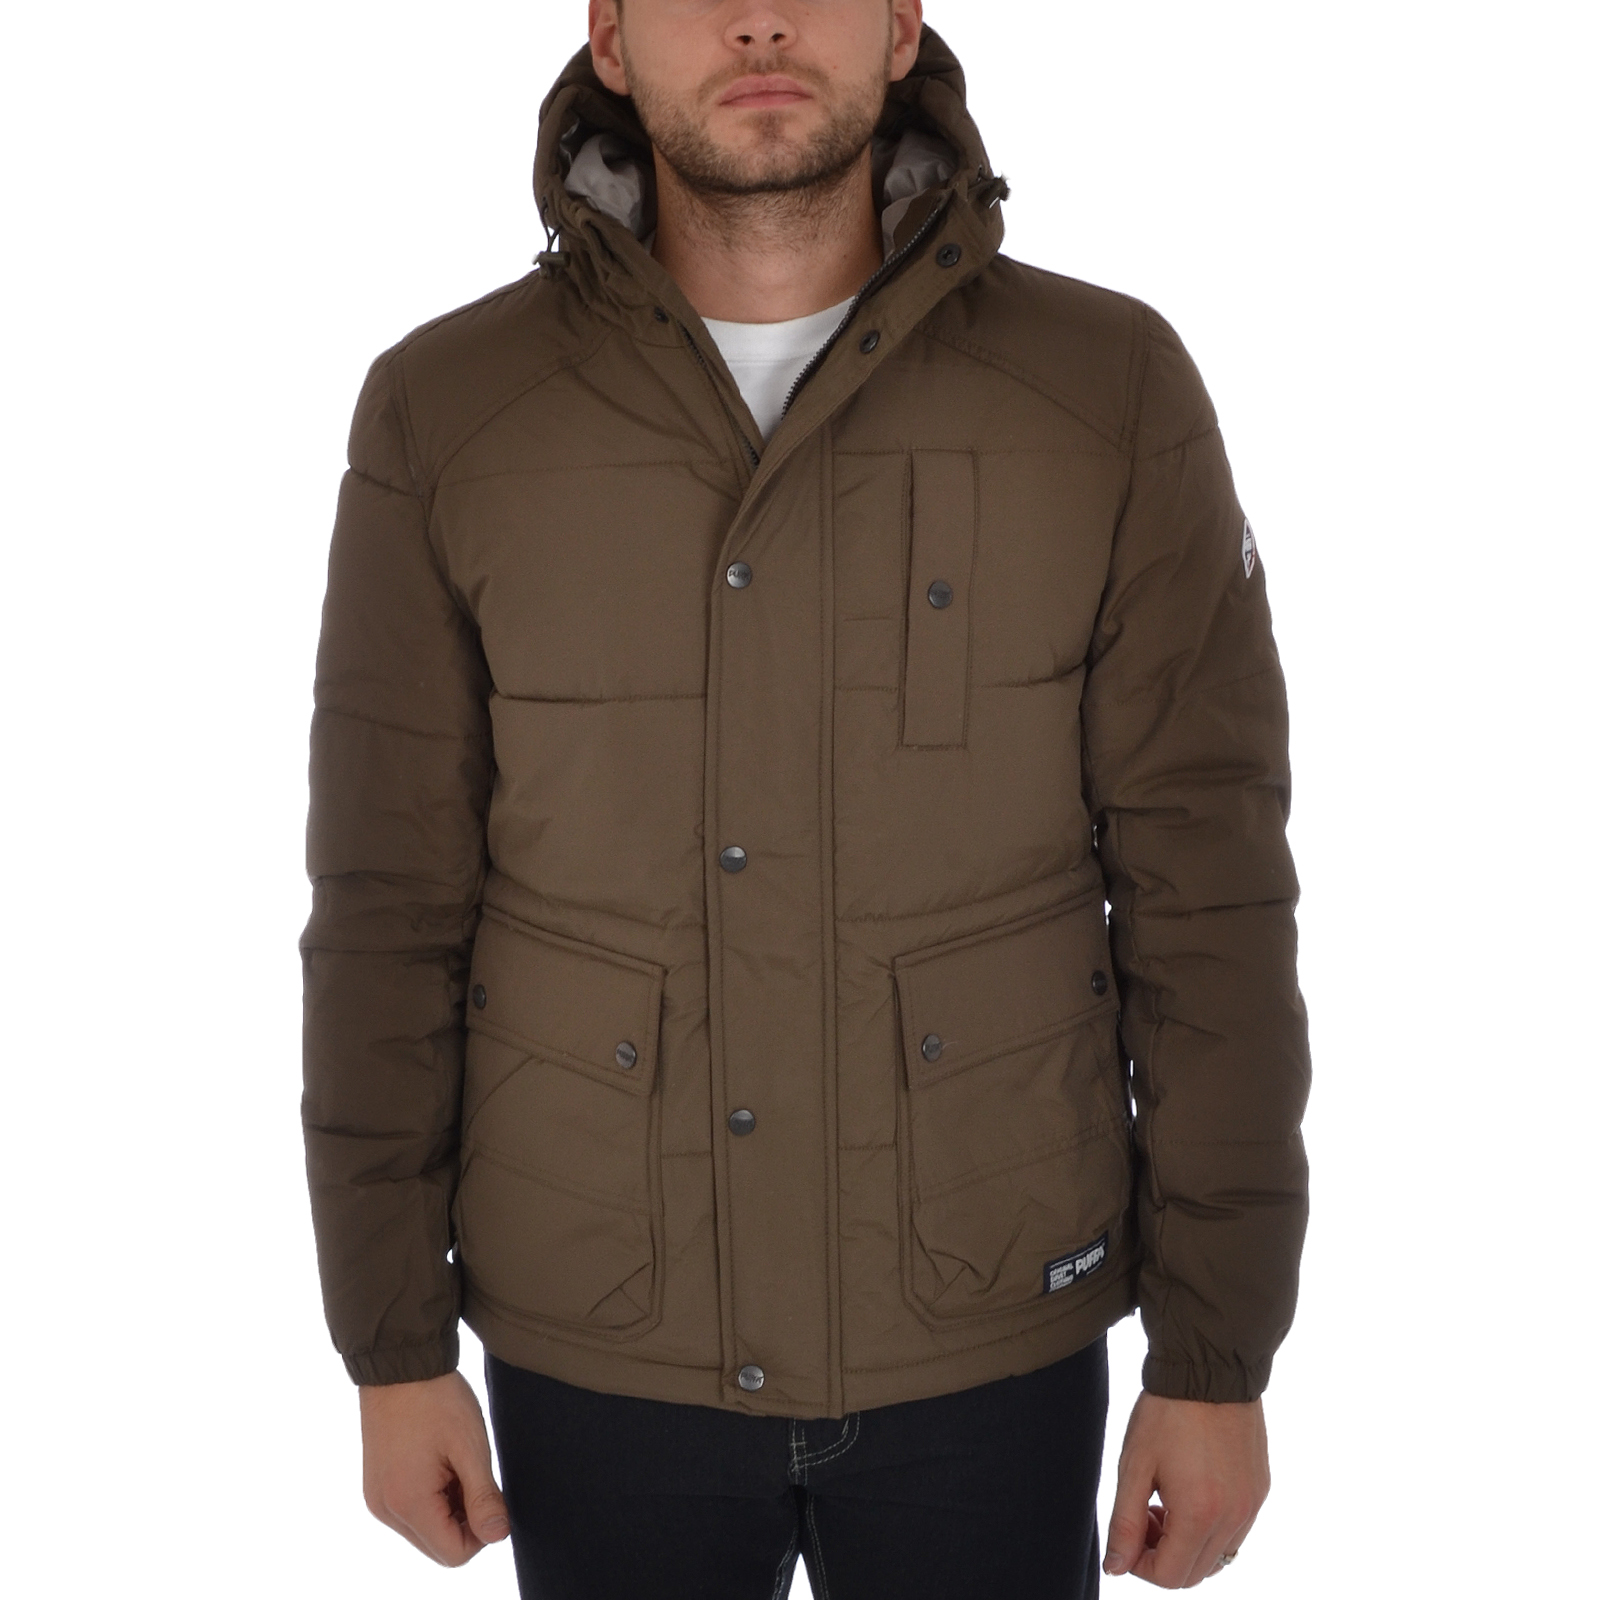 The Henry Mens Padded Jacket is extremely warm and comfortable. CHERRY CHICK Men's Ultra Light Down Padded Jacket with Hood. by CHERRY CHICK. $ Ifantasy Men's Winter Snow Puffer Coats Fur Hooded Thick Cotton-Padded Quilted Warm Down Jacket. by Ifantasy. $ - $ $ 19 $ 29 99 Prime.